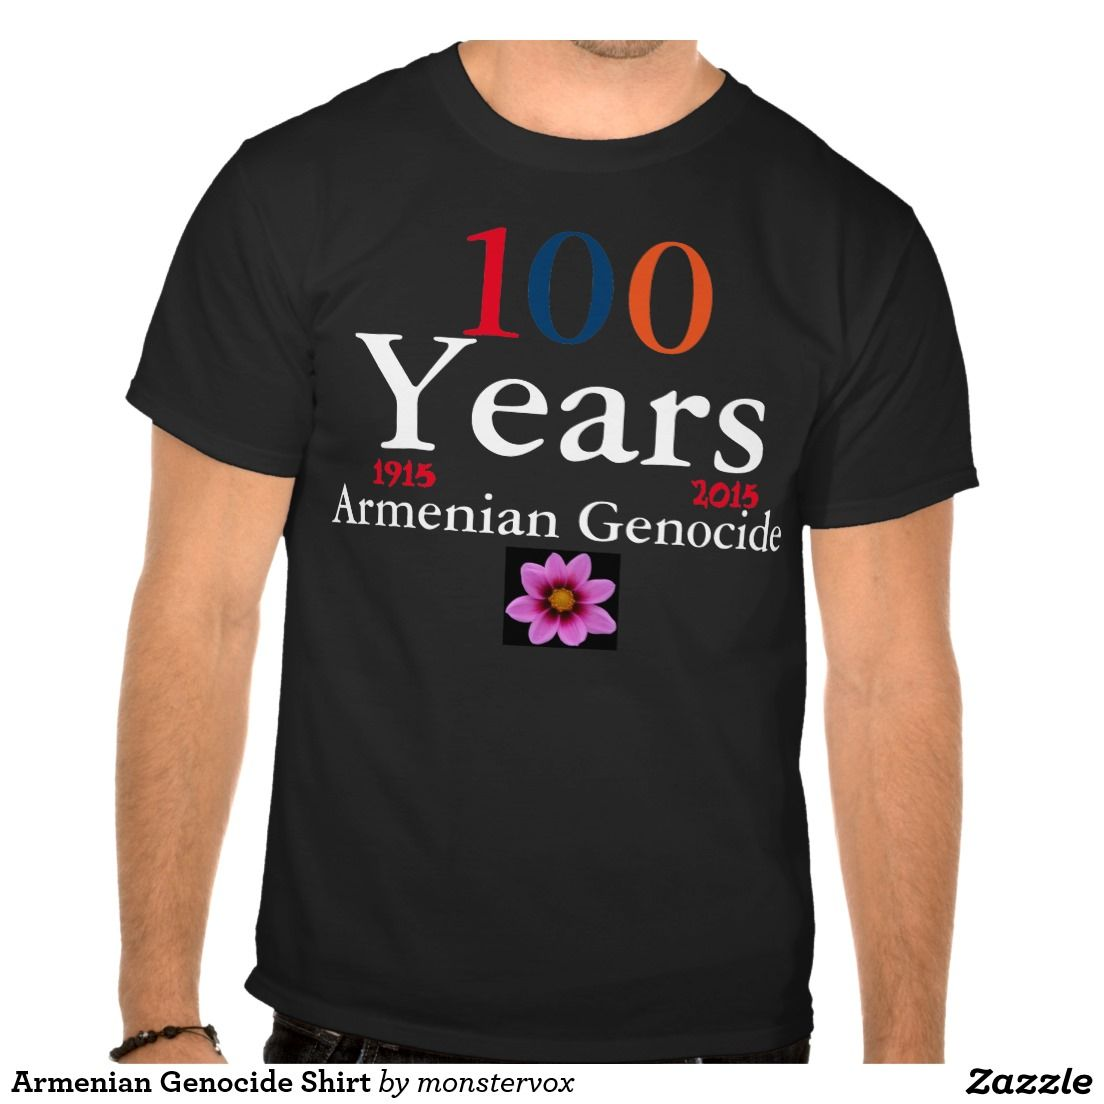 Armenian Genocide Shirt #ArmenianGenocide Go to www.zazzle.com/monstervox for more Armenian Genocide products